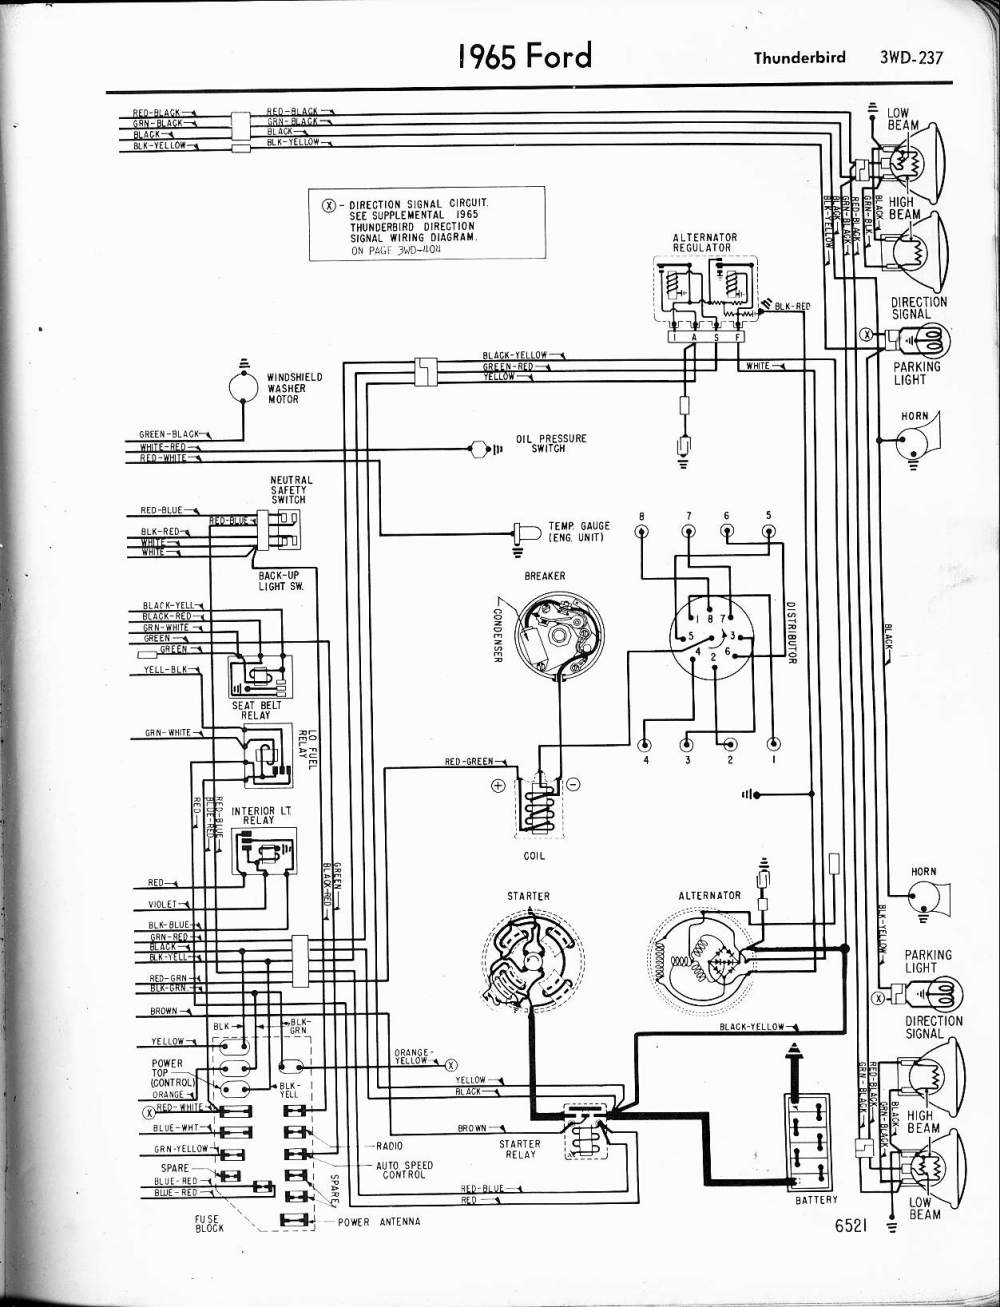 medium resolution of 1964 ford thunderbird fuse box diagram wiring diagrams scematic 1997 ford thunderbird radio wiring diagram 1997 thunderbird wiring diagram